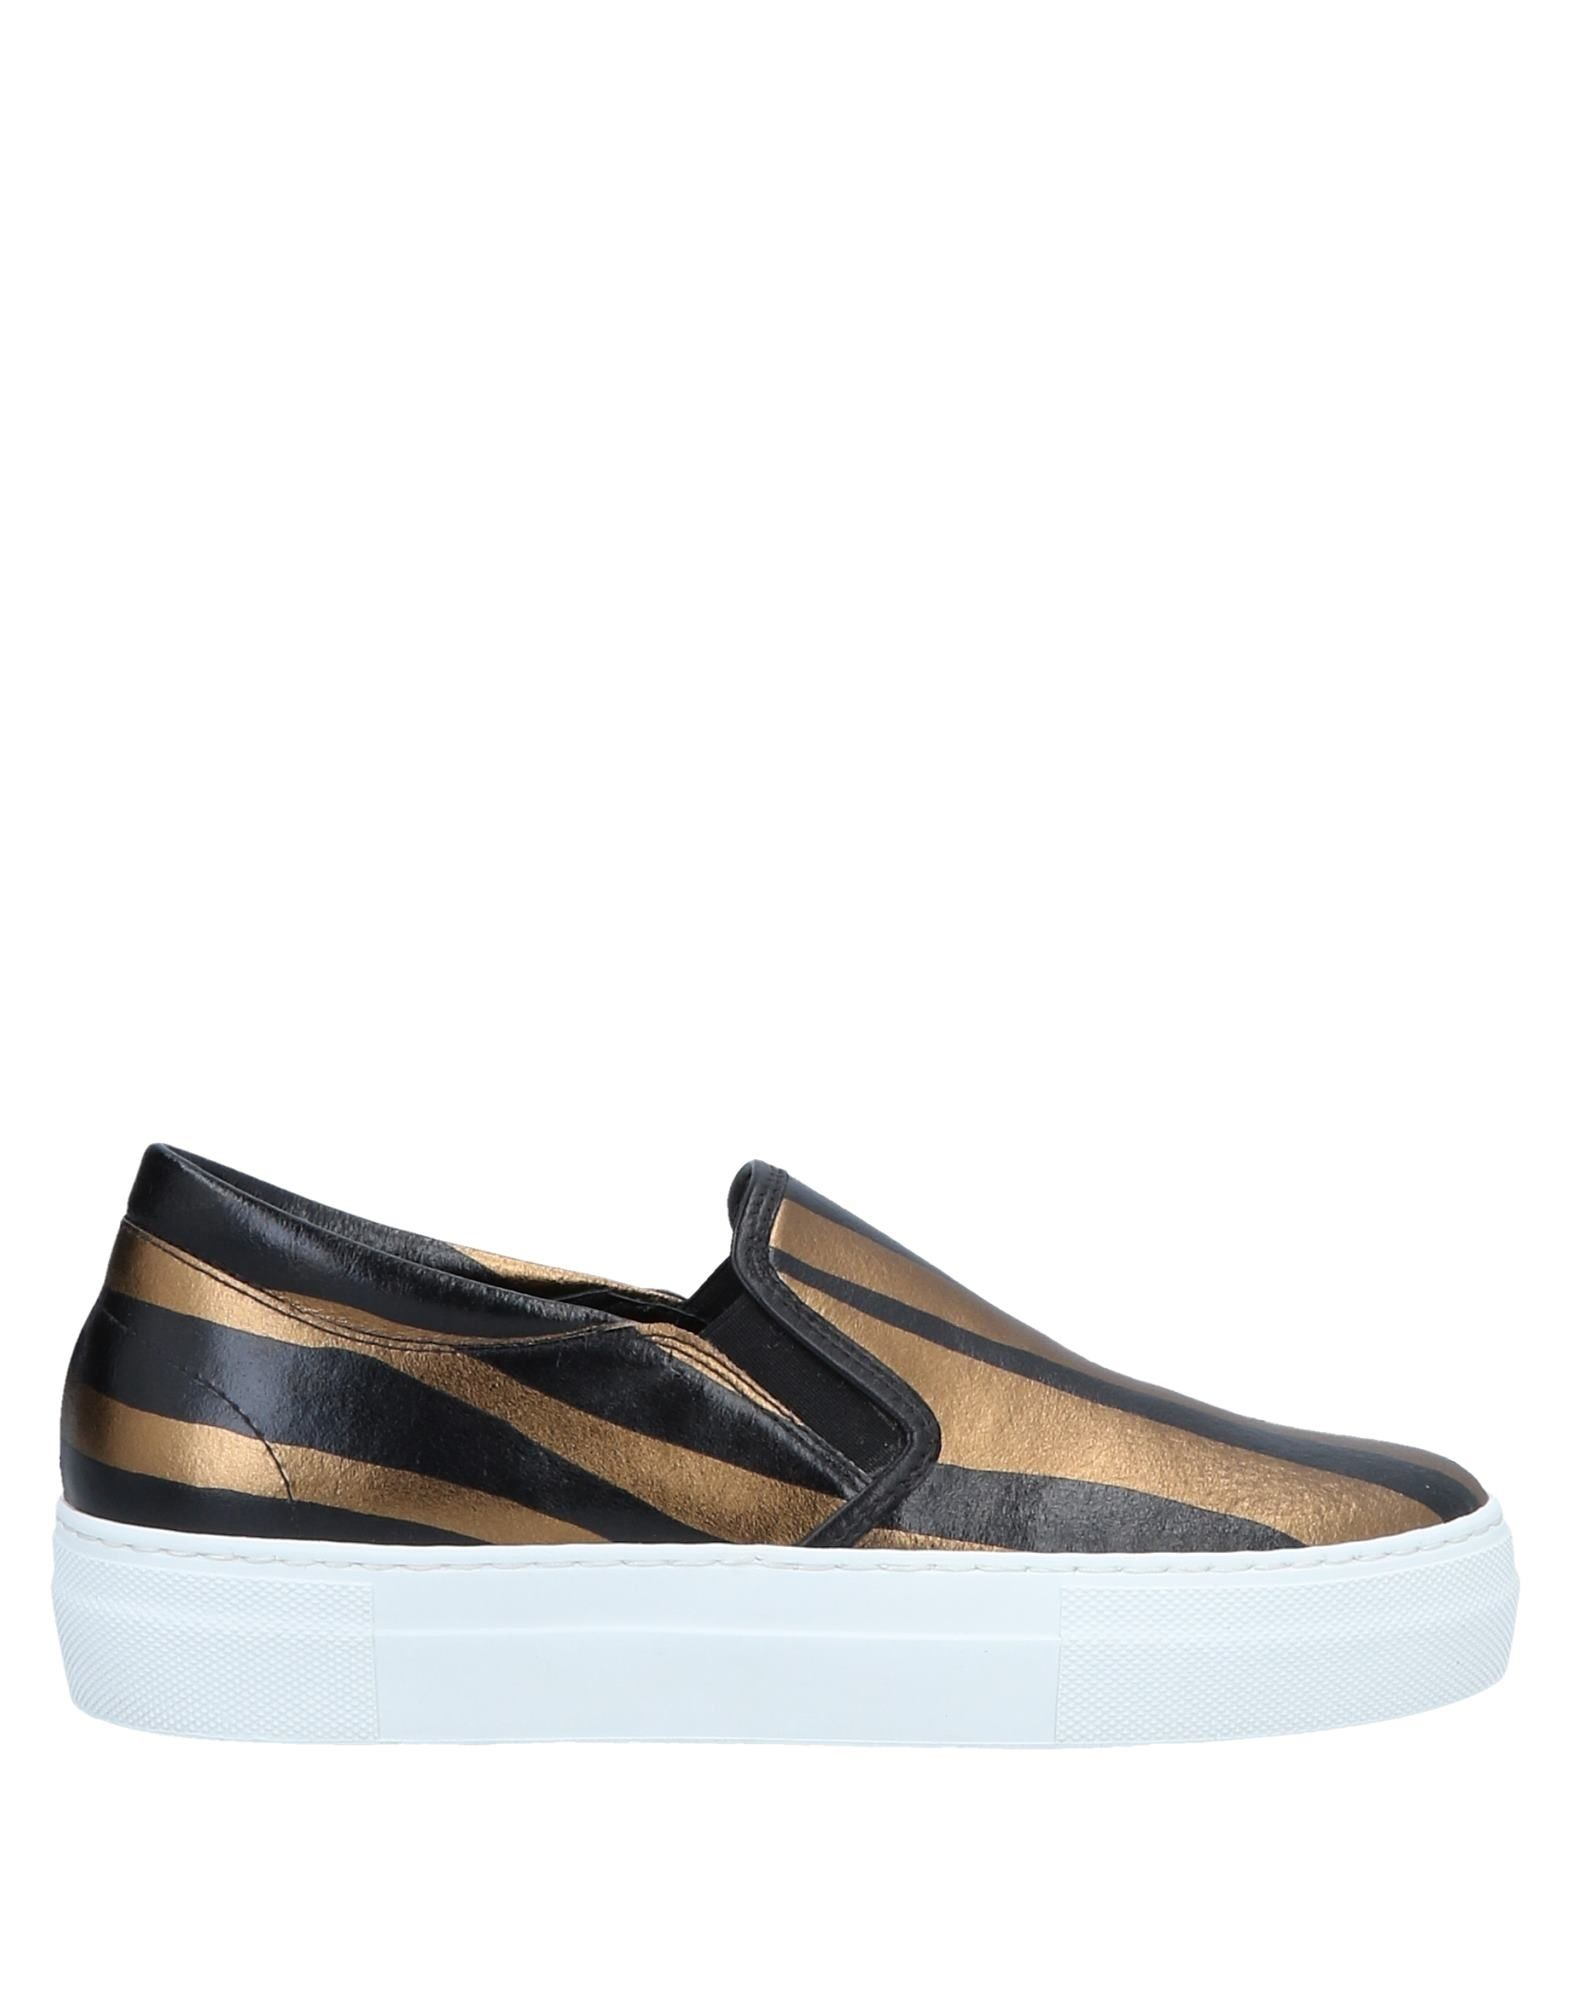 Dibrera By Paolo Zanoli Sneakers Sneakers Sneakers - Women Dibrera By Paolo Zanoli Sneakers online on  United Kingdom - 11565564JM 897438